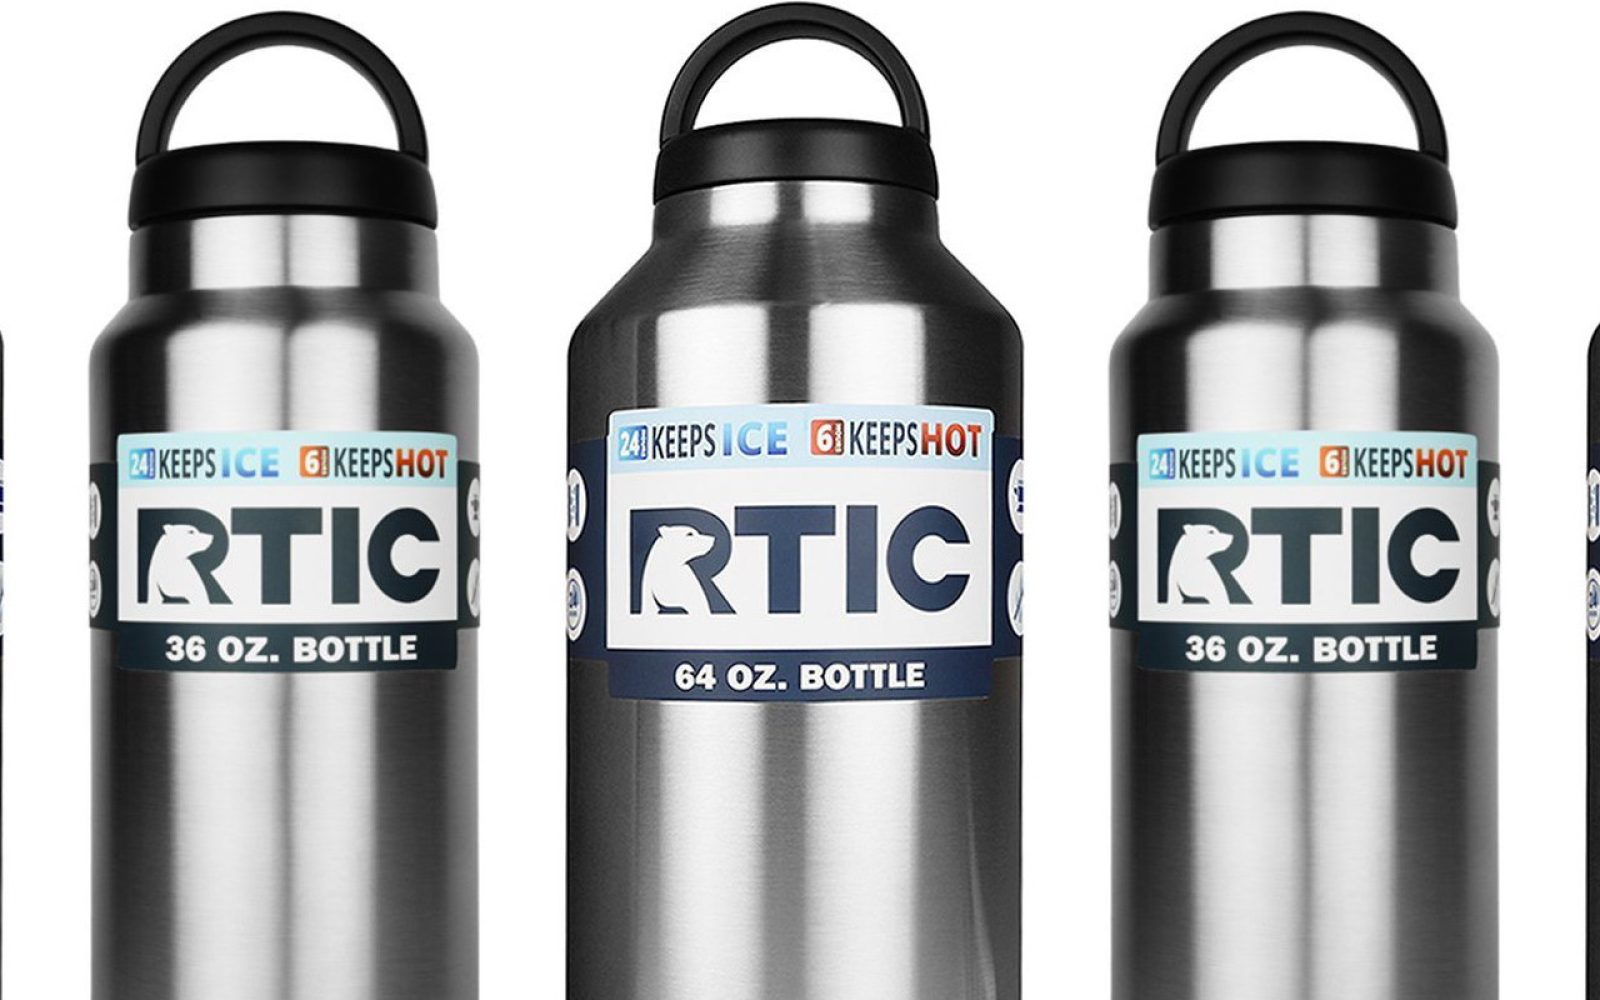 4ec22652cb1 RTIC Stainless Steel Bottles: 32oz $14.50 or 64oz from $18 - 9to5Toys